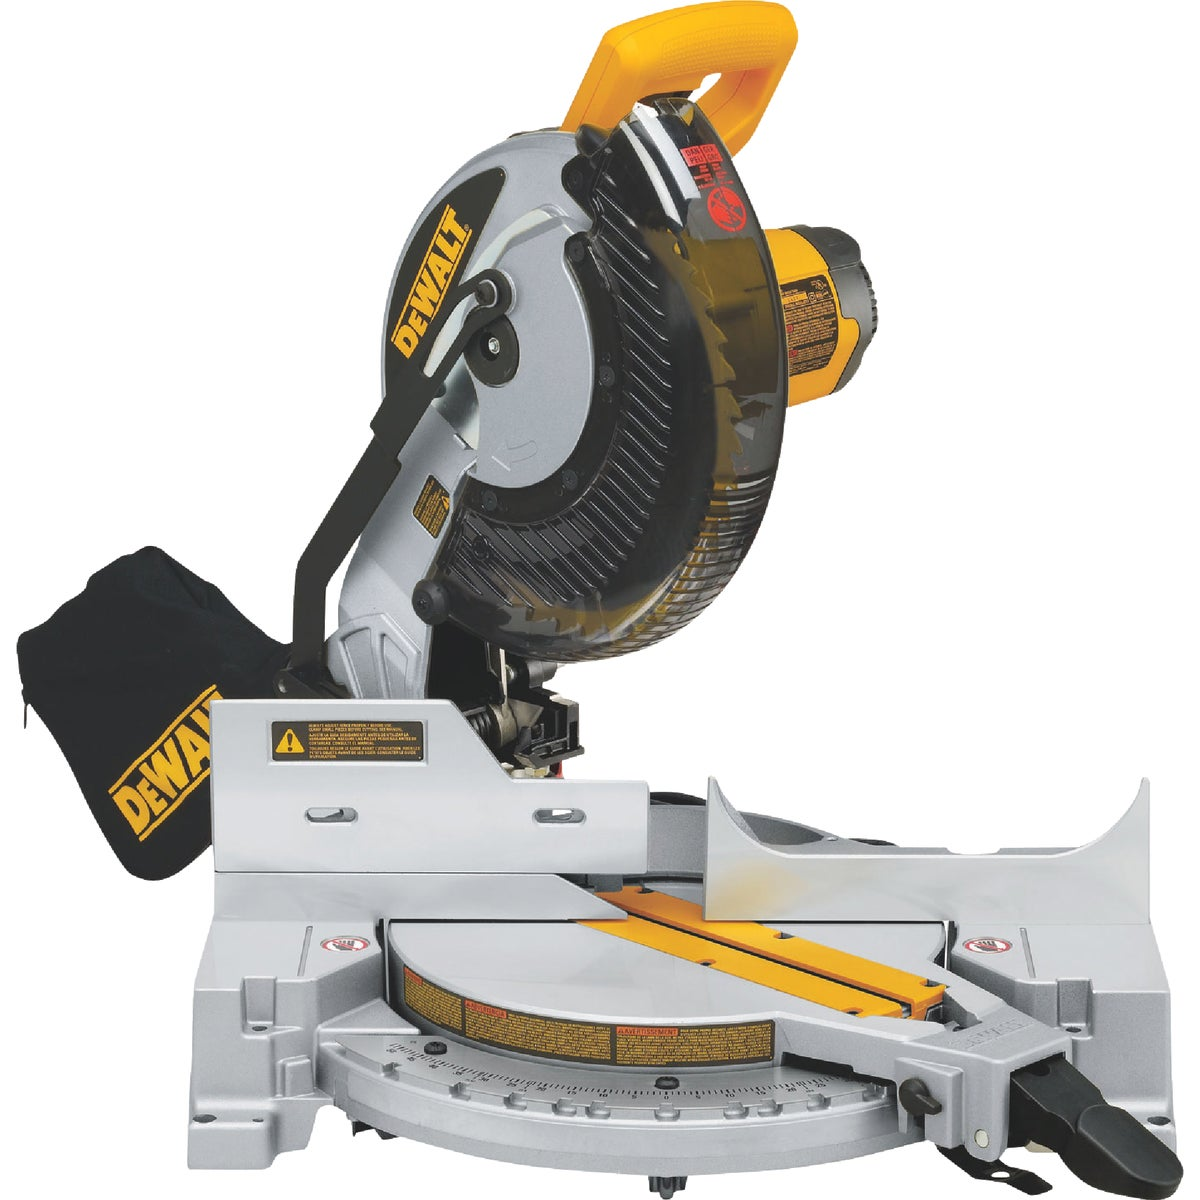 "10"" COMPOUND MITER SAW - DW713 by DeWalt"